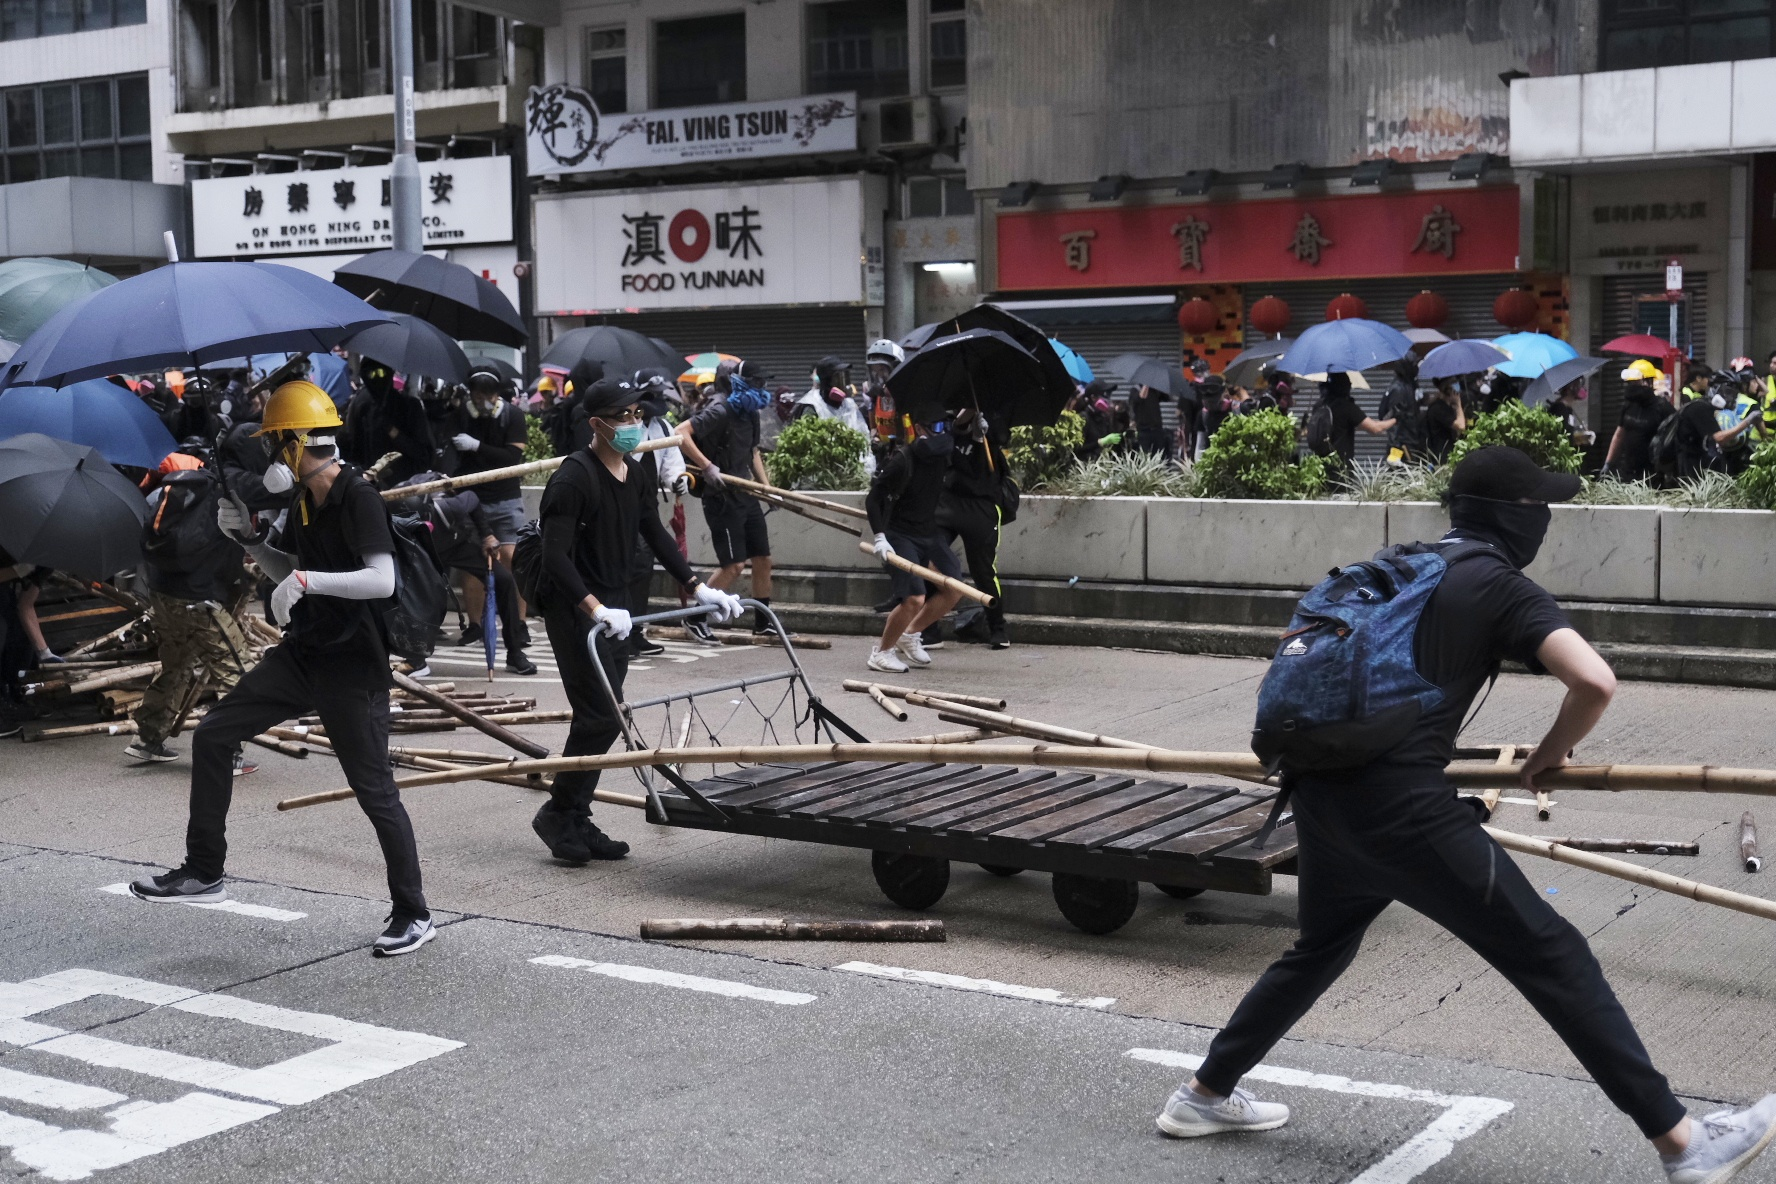 Black terror: The real threat to freedom in Hong Kong